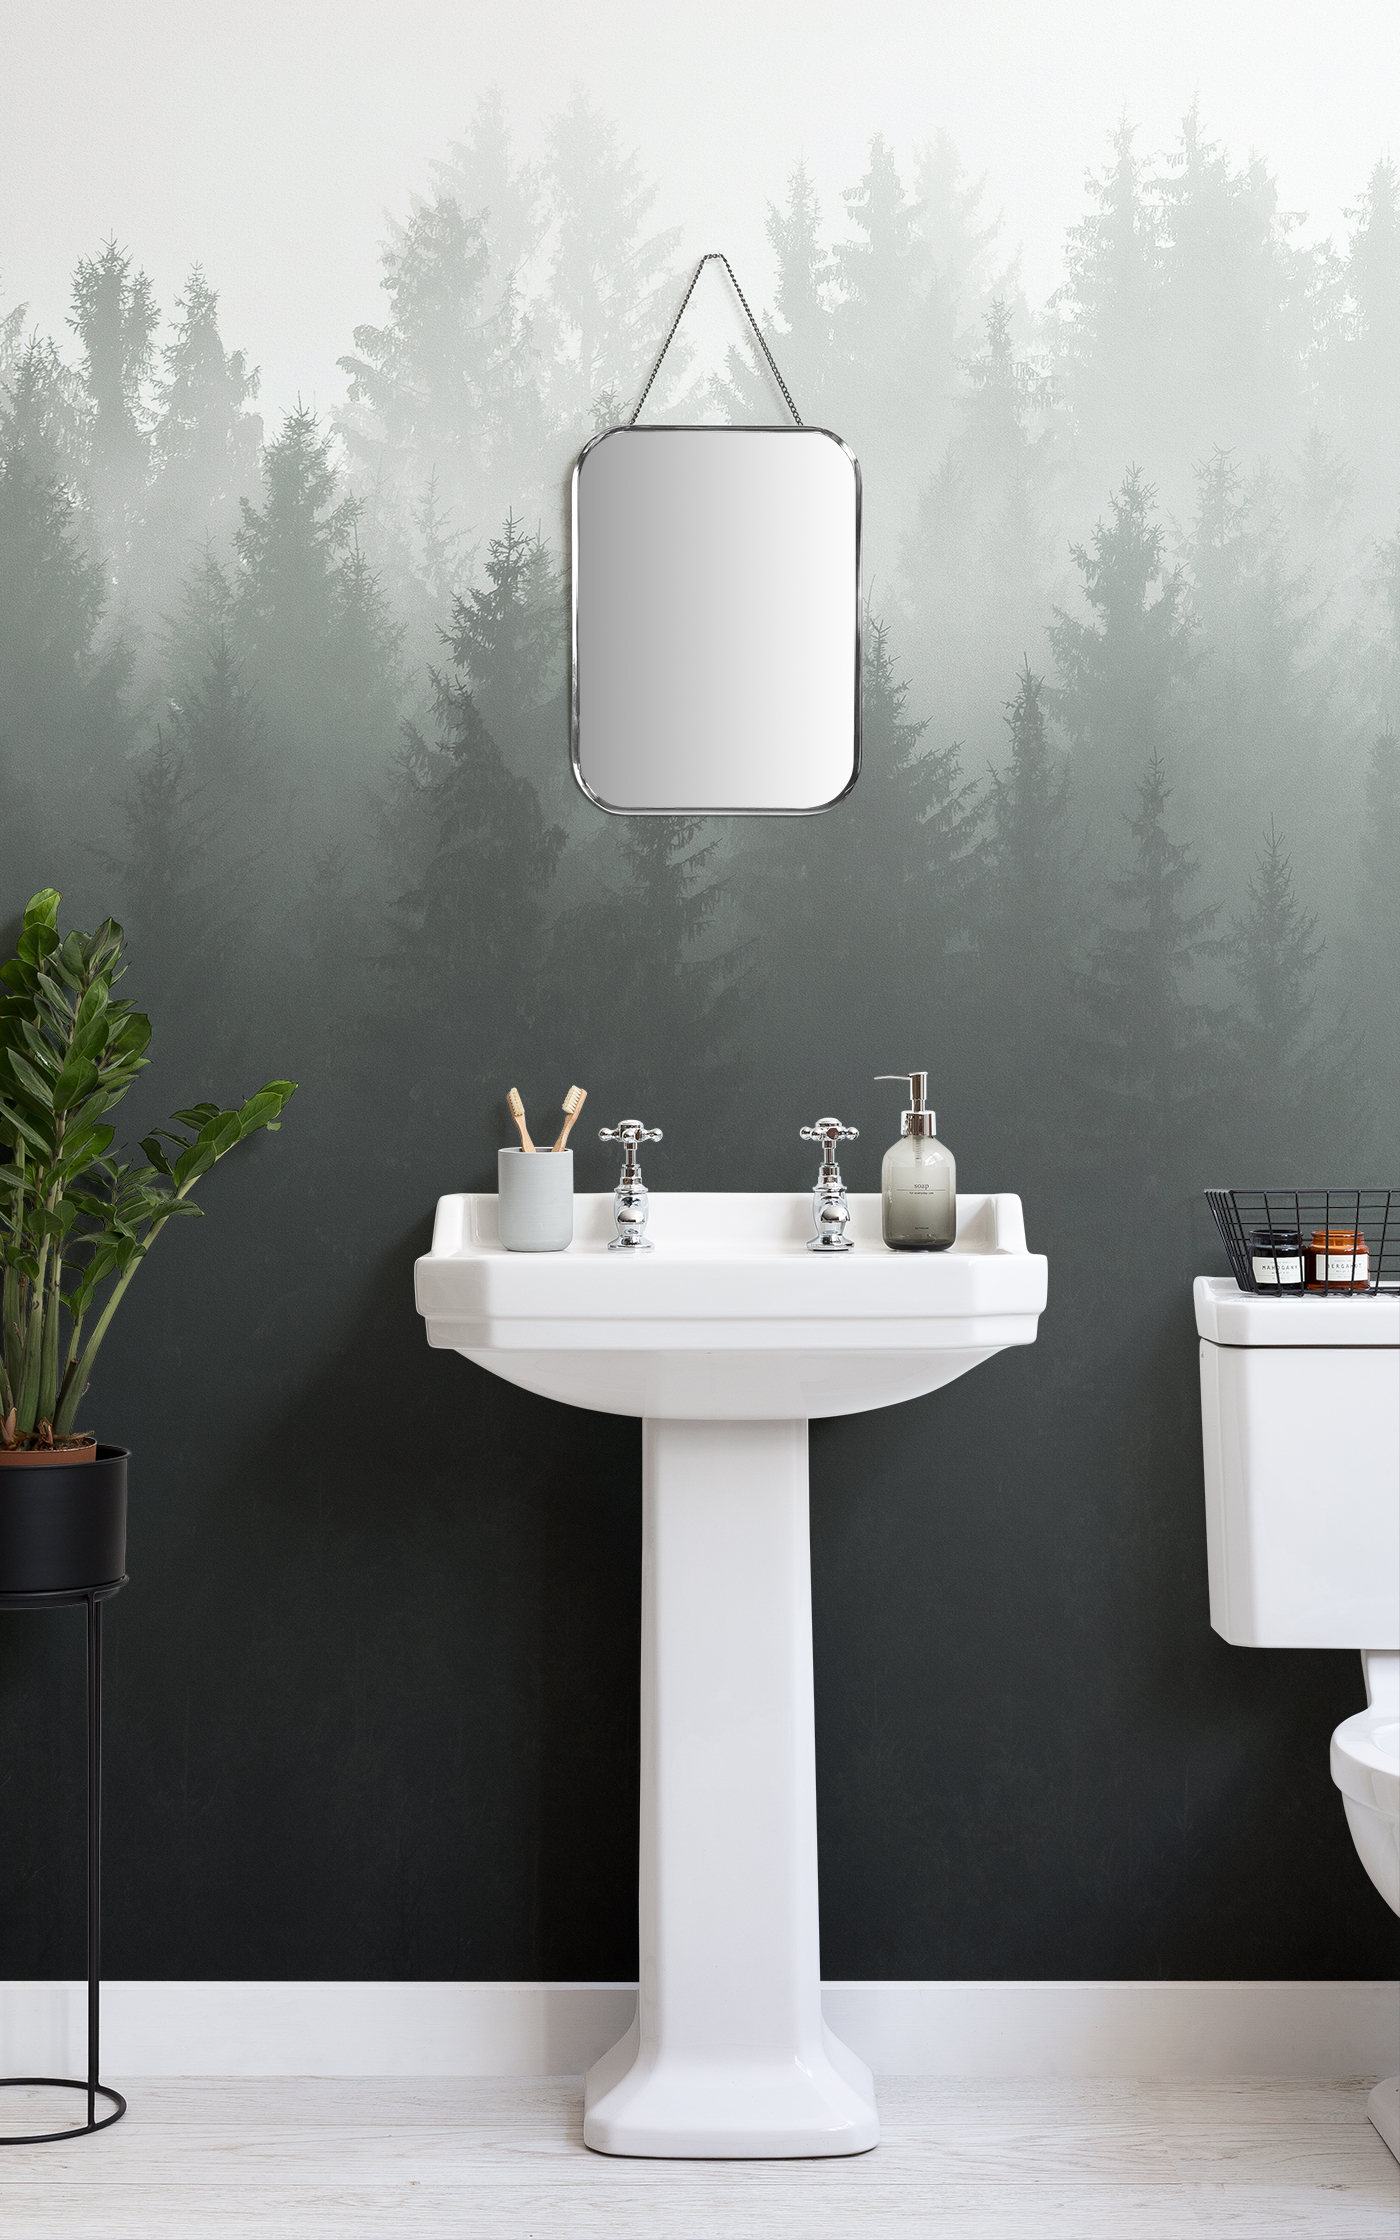 Wallpaper Murals For Bathrooms Small Bathroom Ideas Transform A Space With Small Bathroom Wallpaper